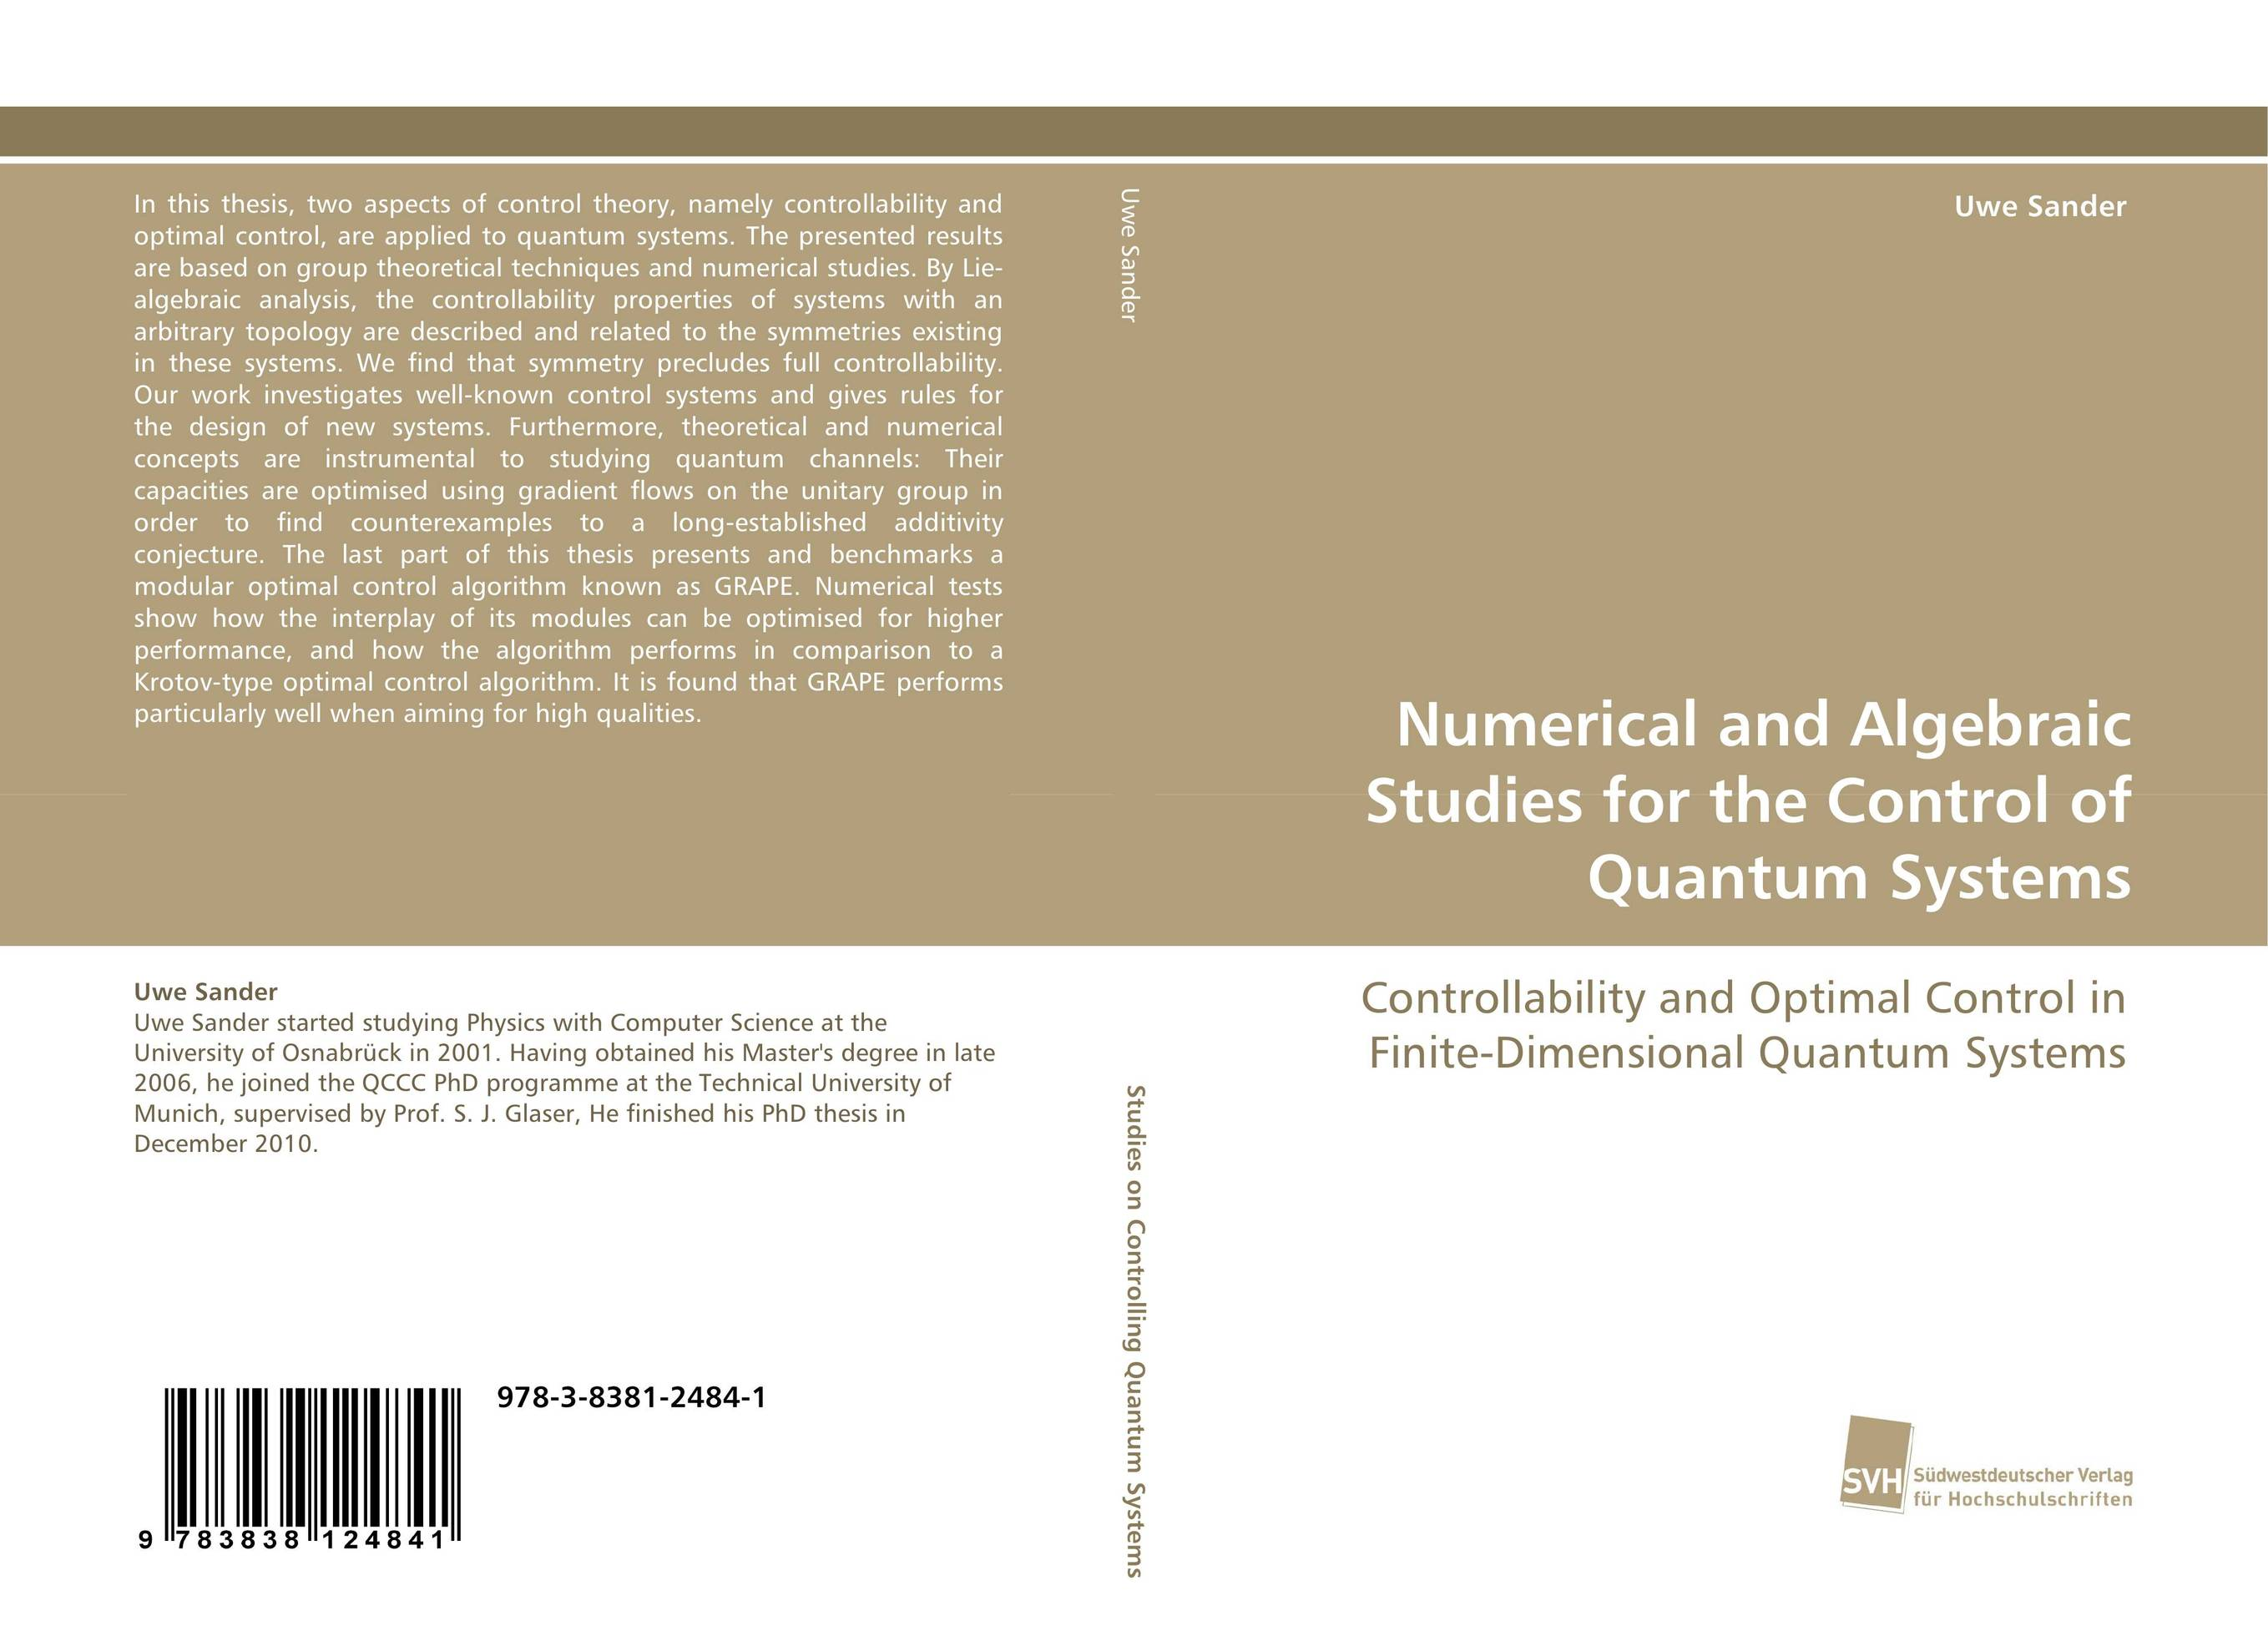 Numerical and Algebraic Studies for the Control of Quantum Systems